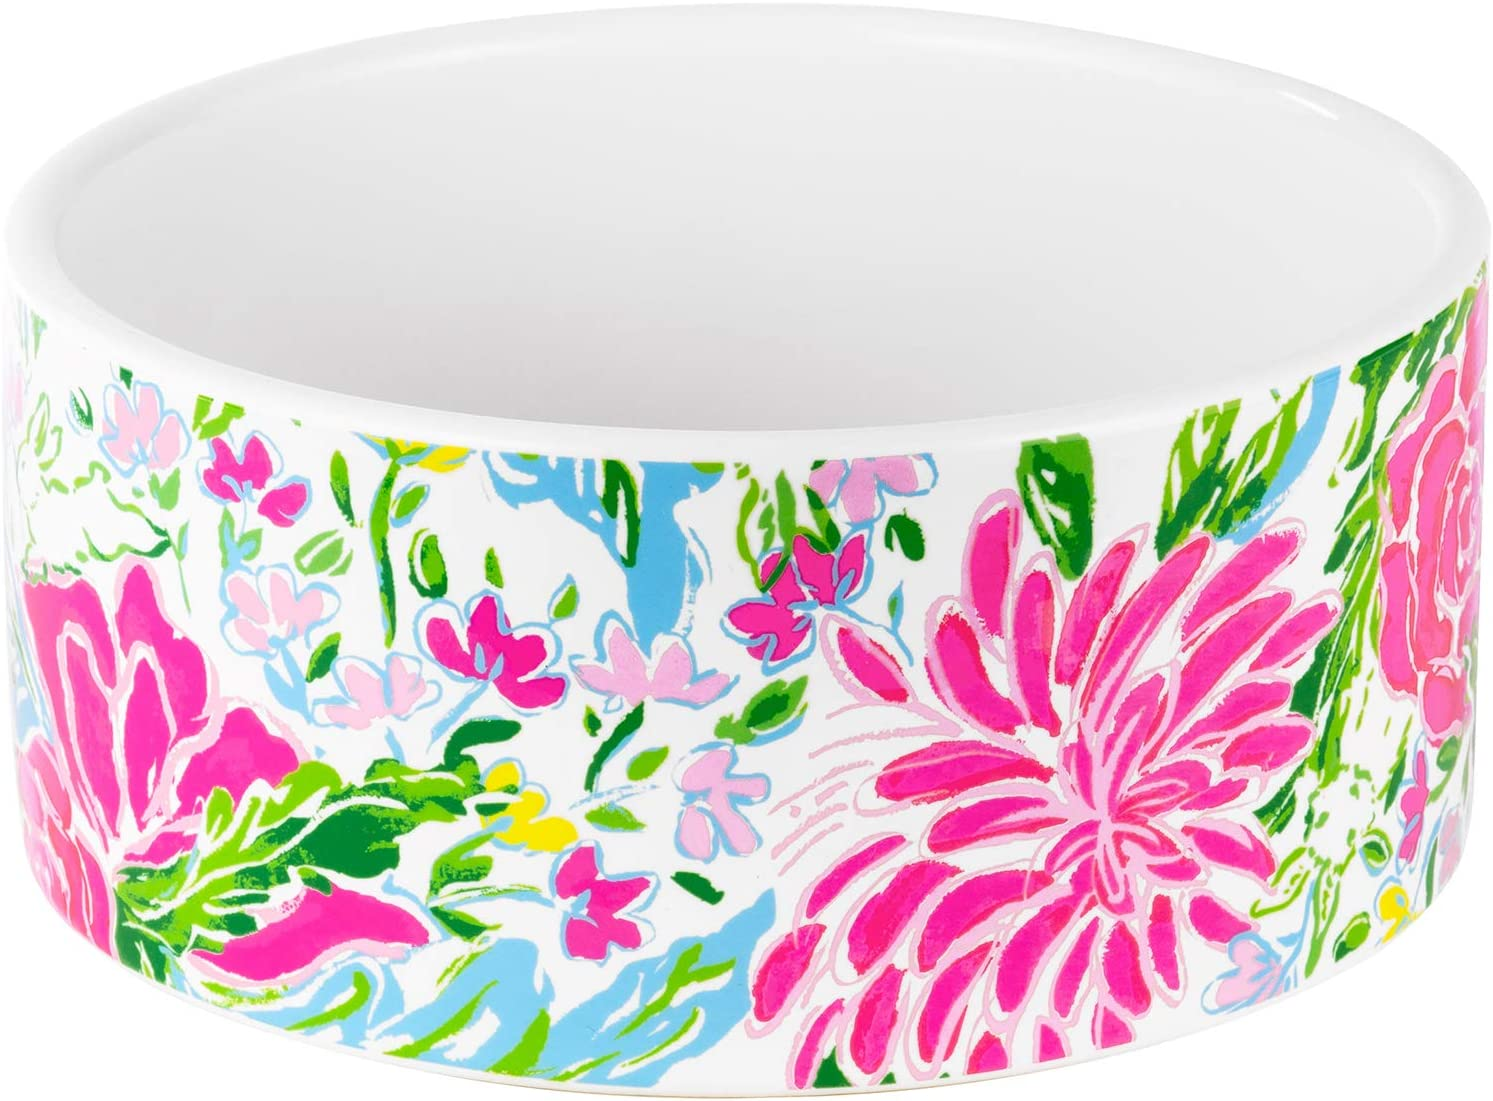 Lilly Pulitzer Ceramic Dog Bowl for Food or Water, 4/5 Cup Pet Dish for Home, Bunny Business